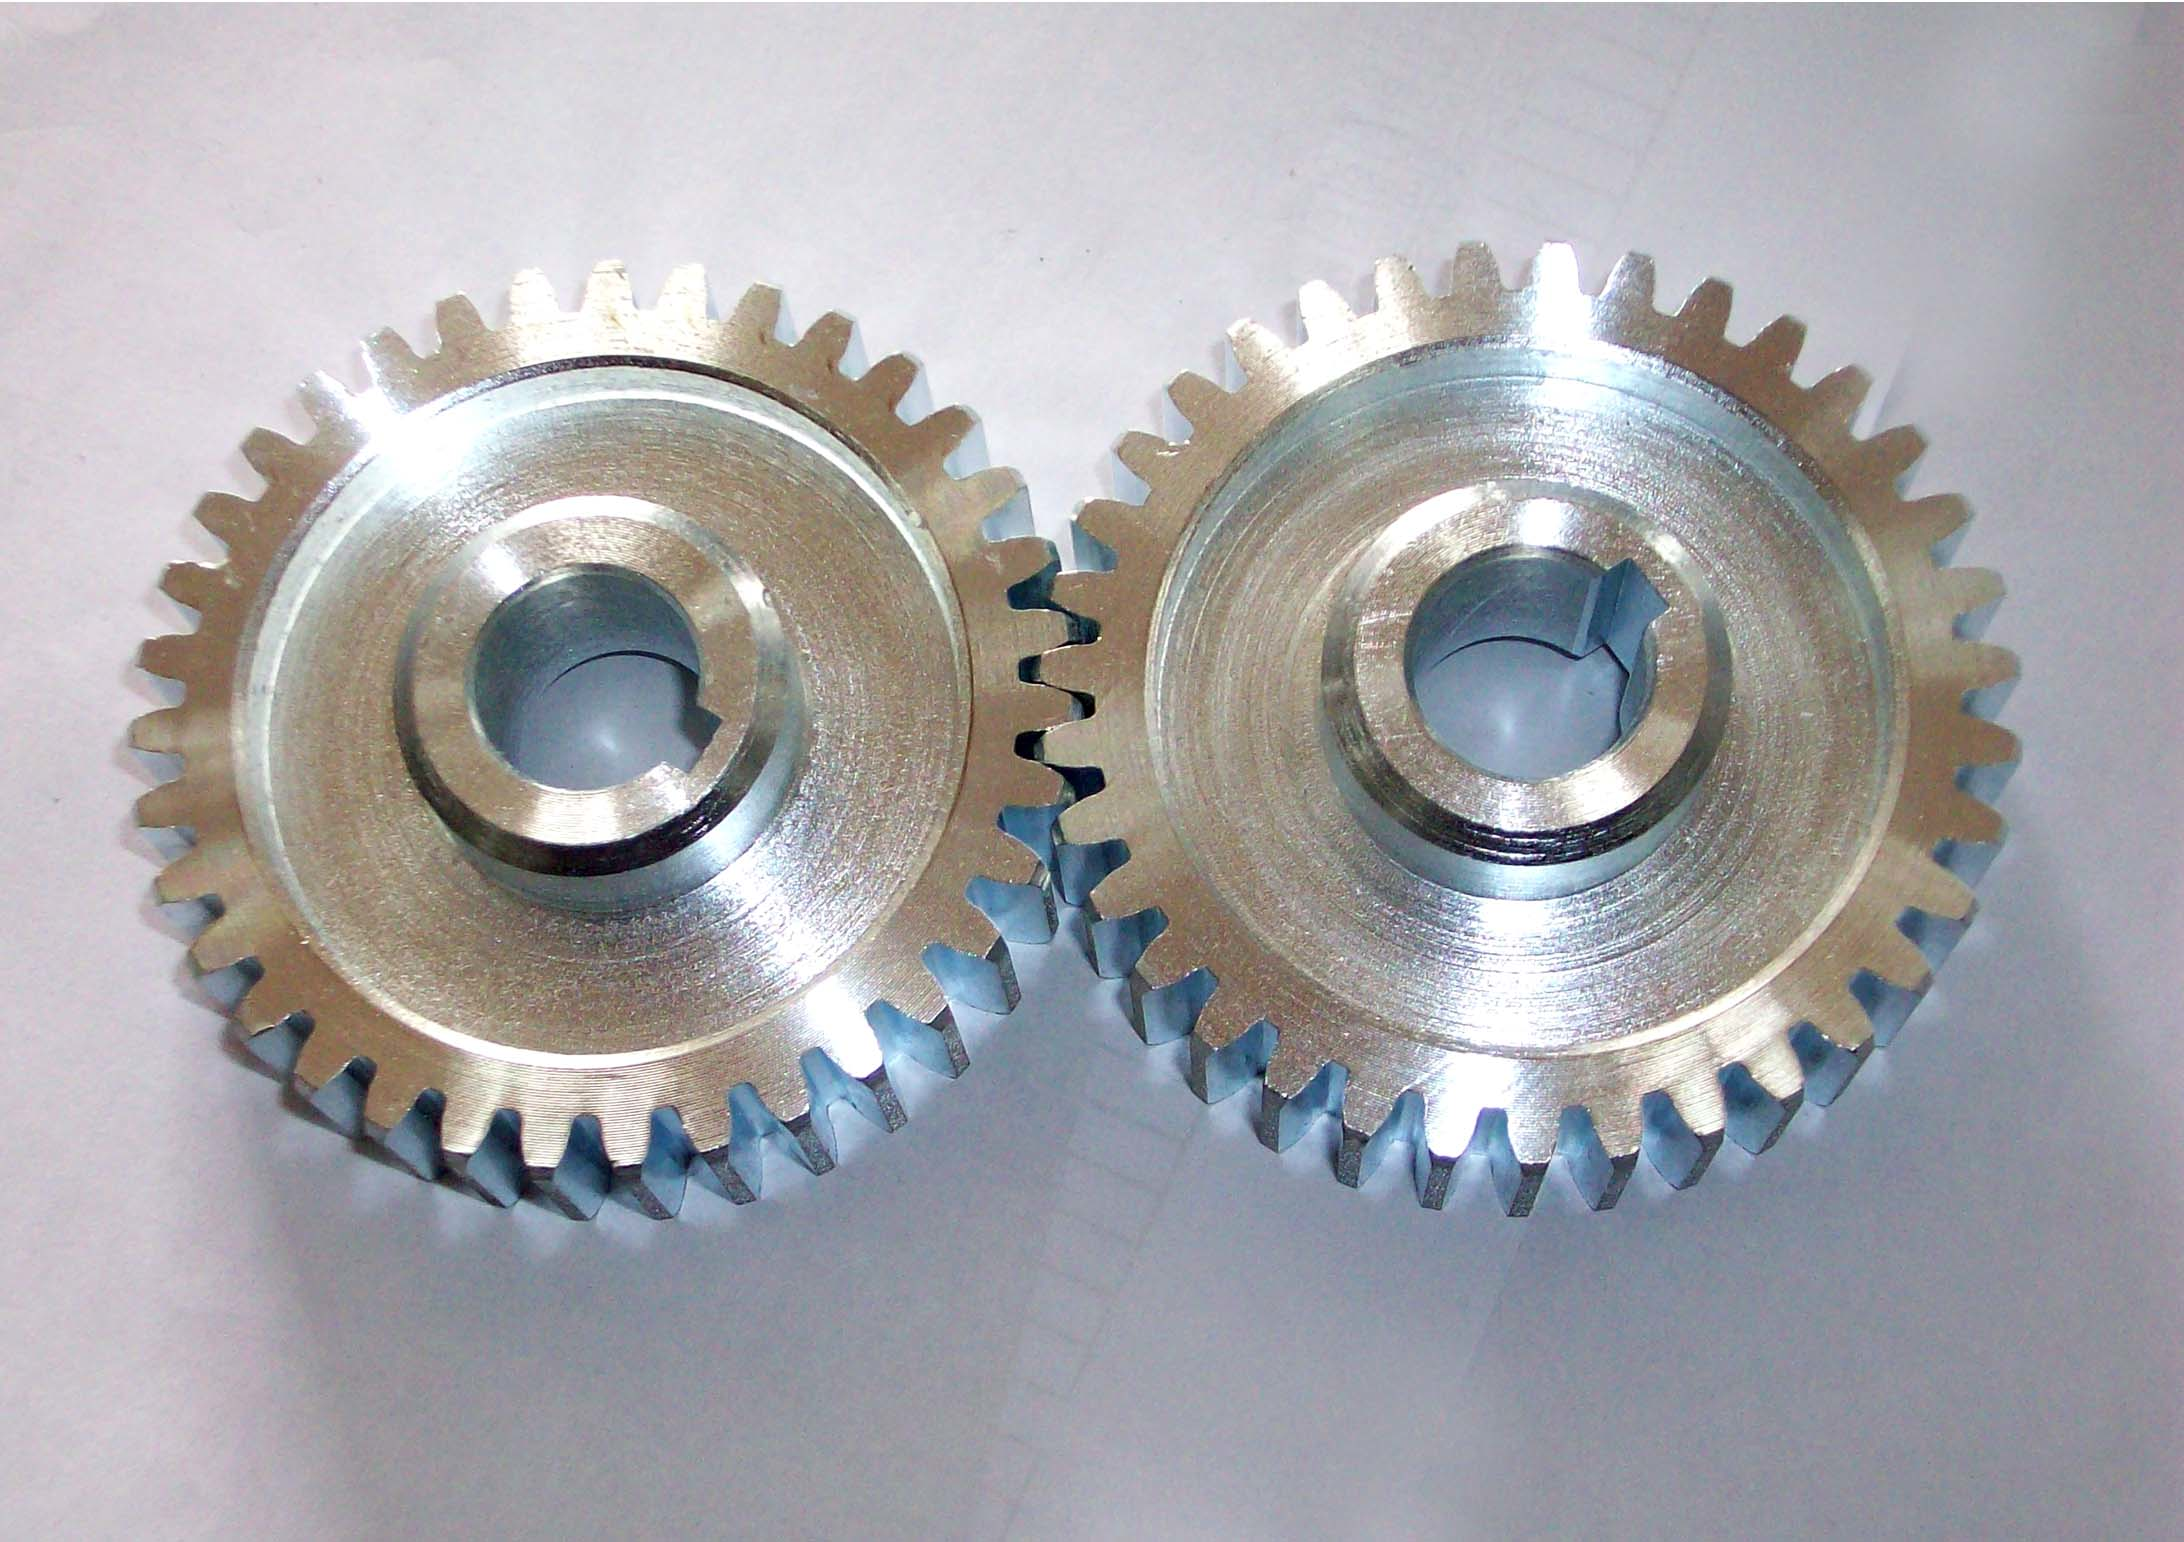 Center to Center Spacing for Shafts with Spur Gears | MISUMI